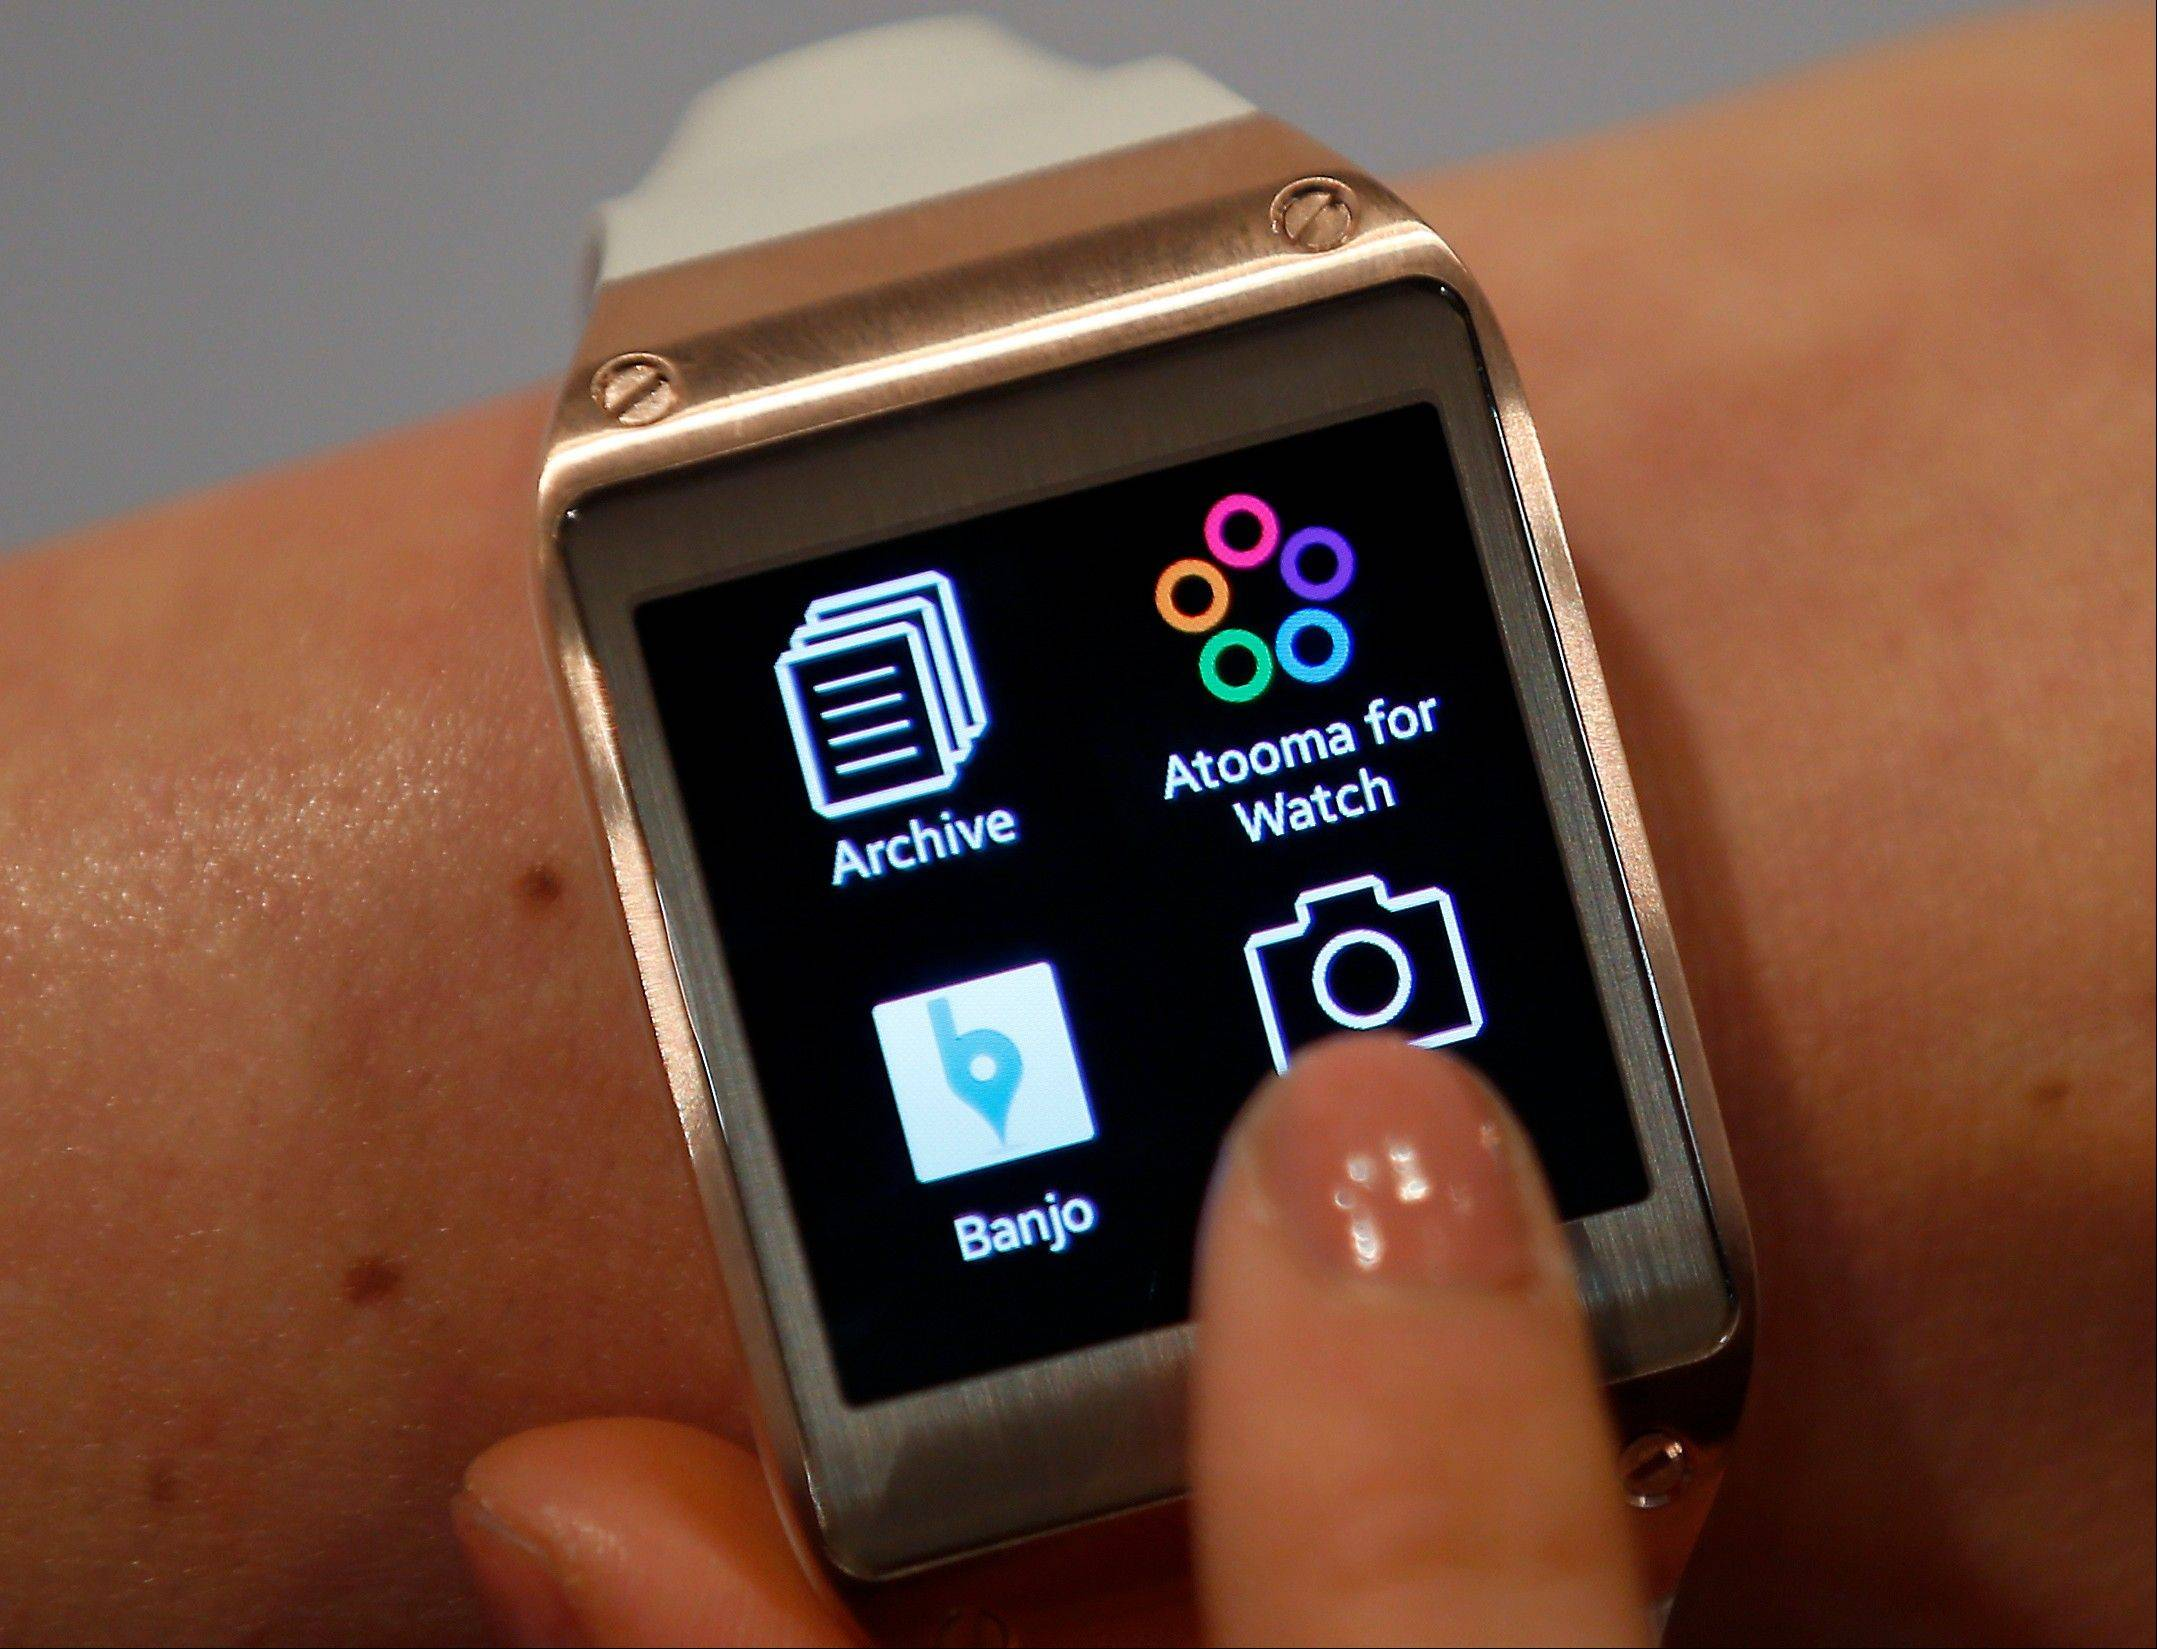 The so-called smartwatch is what some technology analysts believe could become this year's must-have holiday gift.